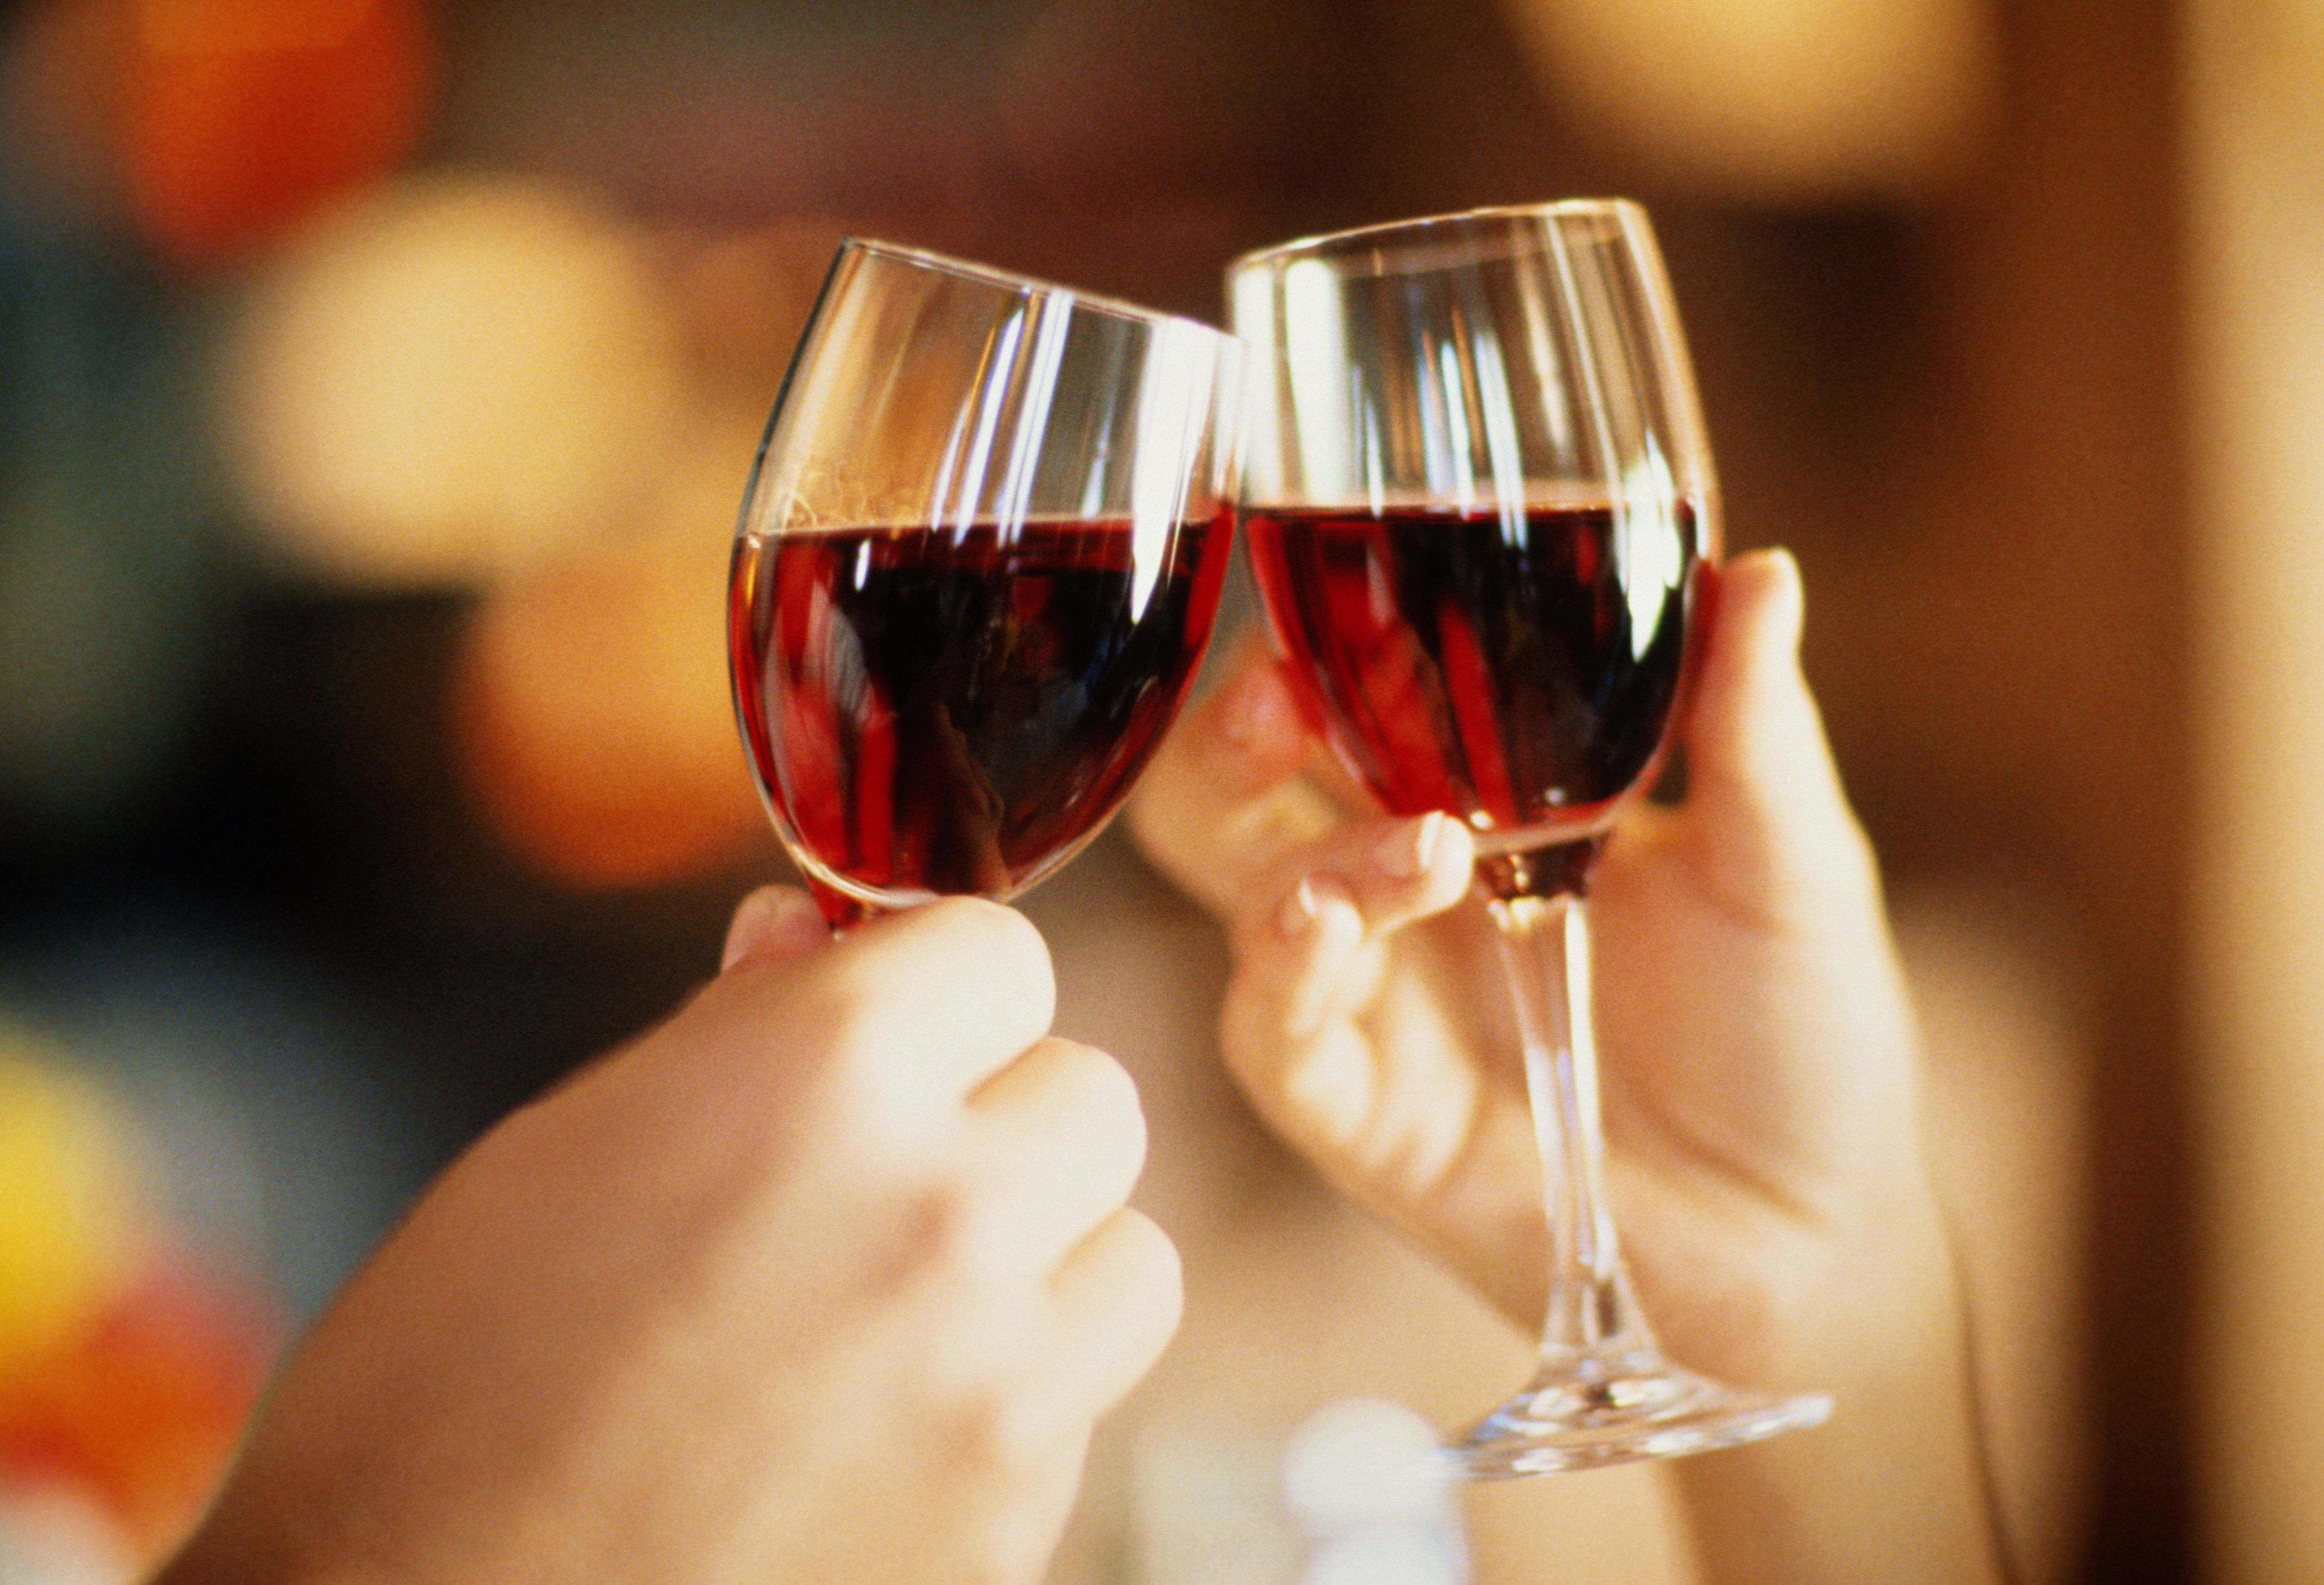 Two people clinking wine glasses